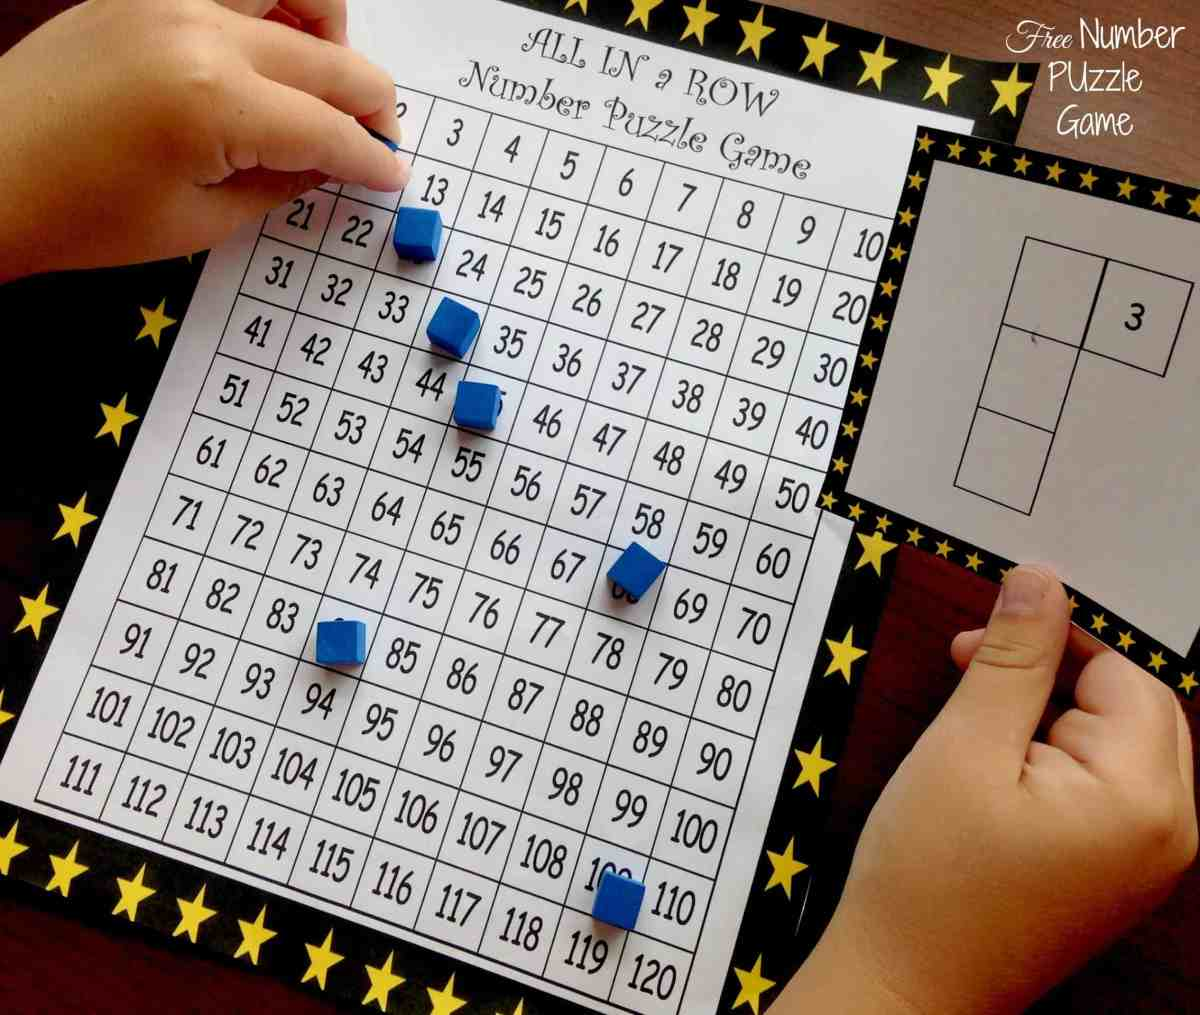 Here's a FREE Number Puzzle Game to Develop Number Sense